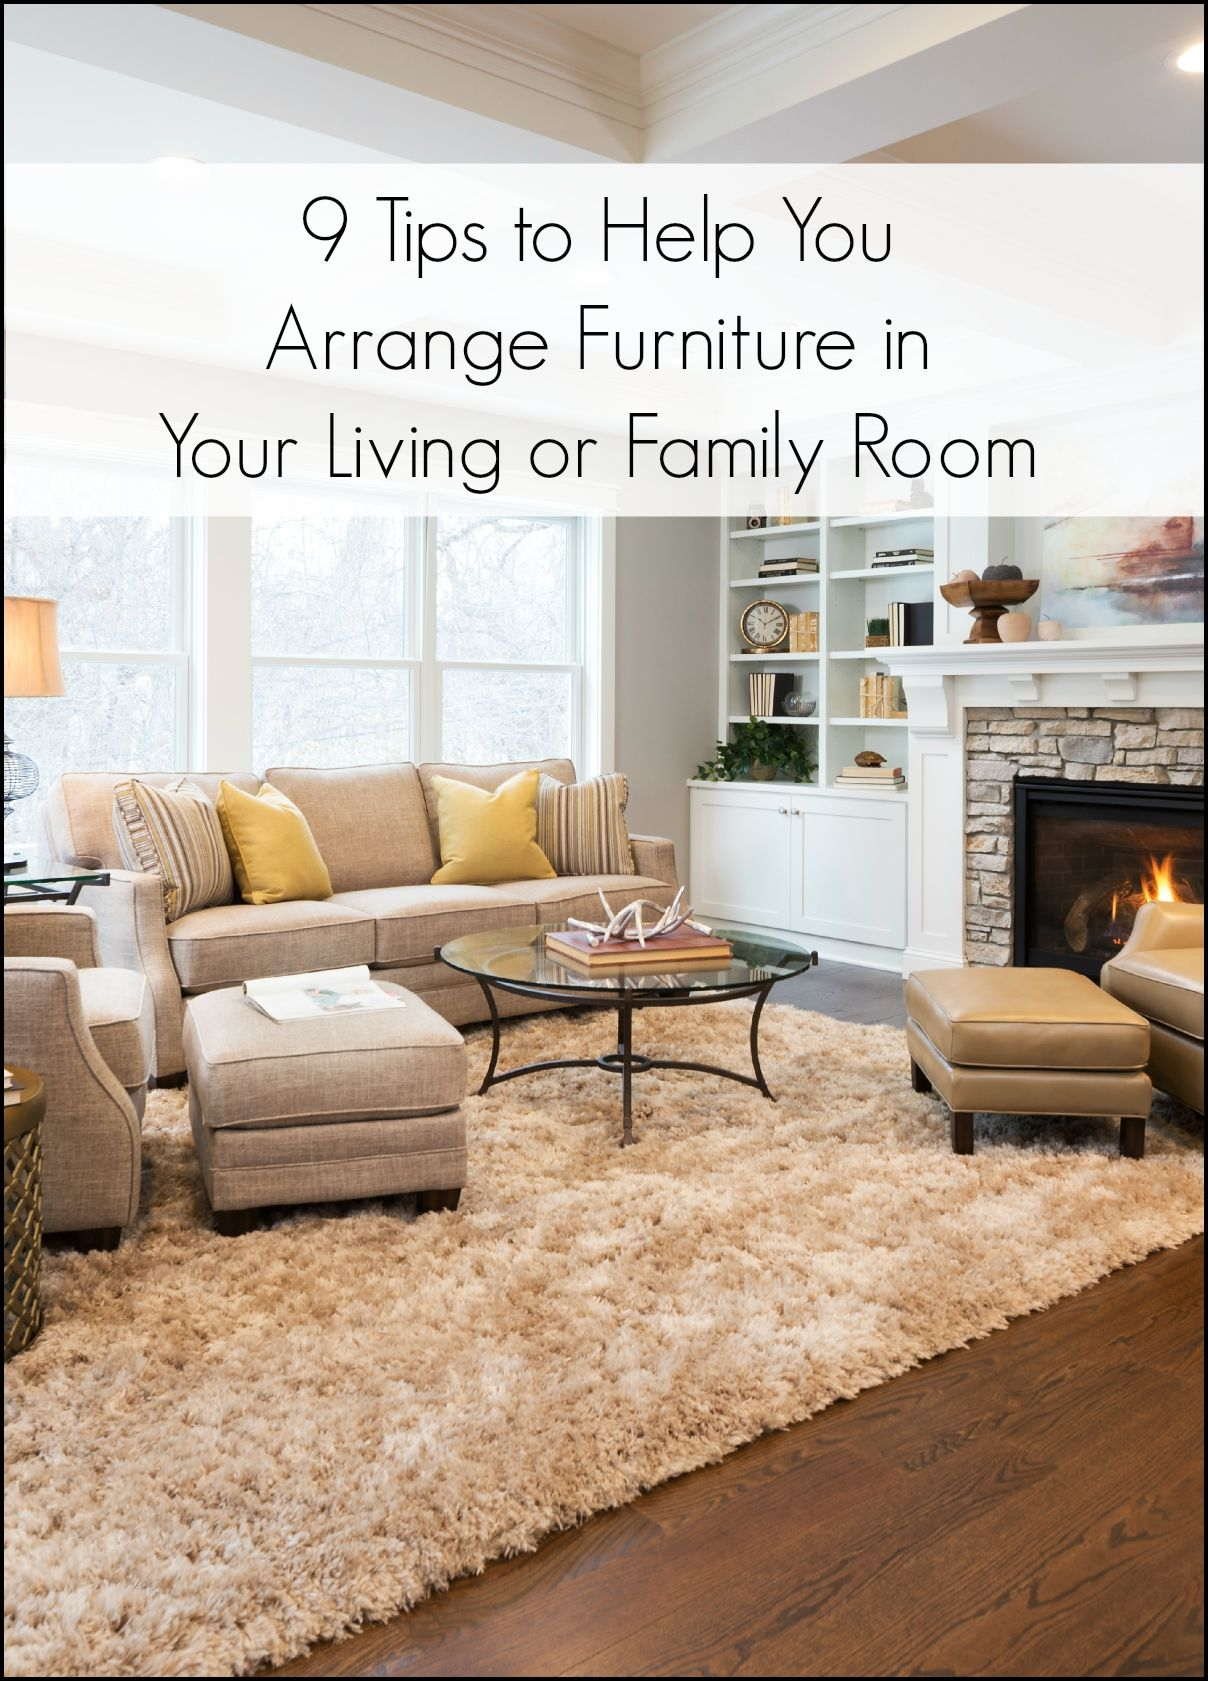 Sitting Room Designs Furniture: 7 Great Reasons To Decorate With Leather